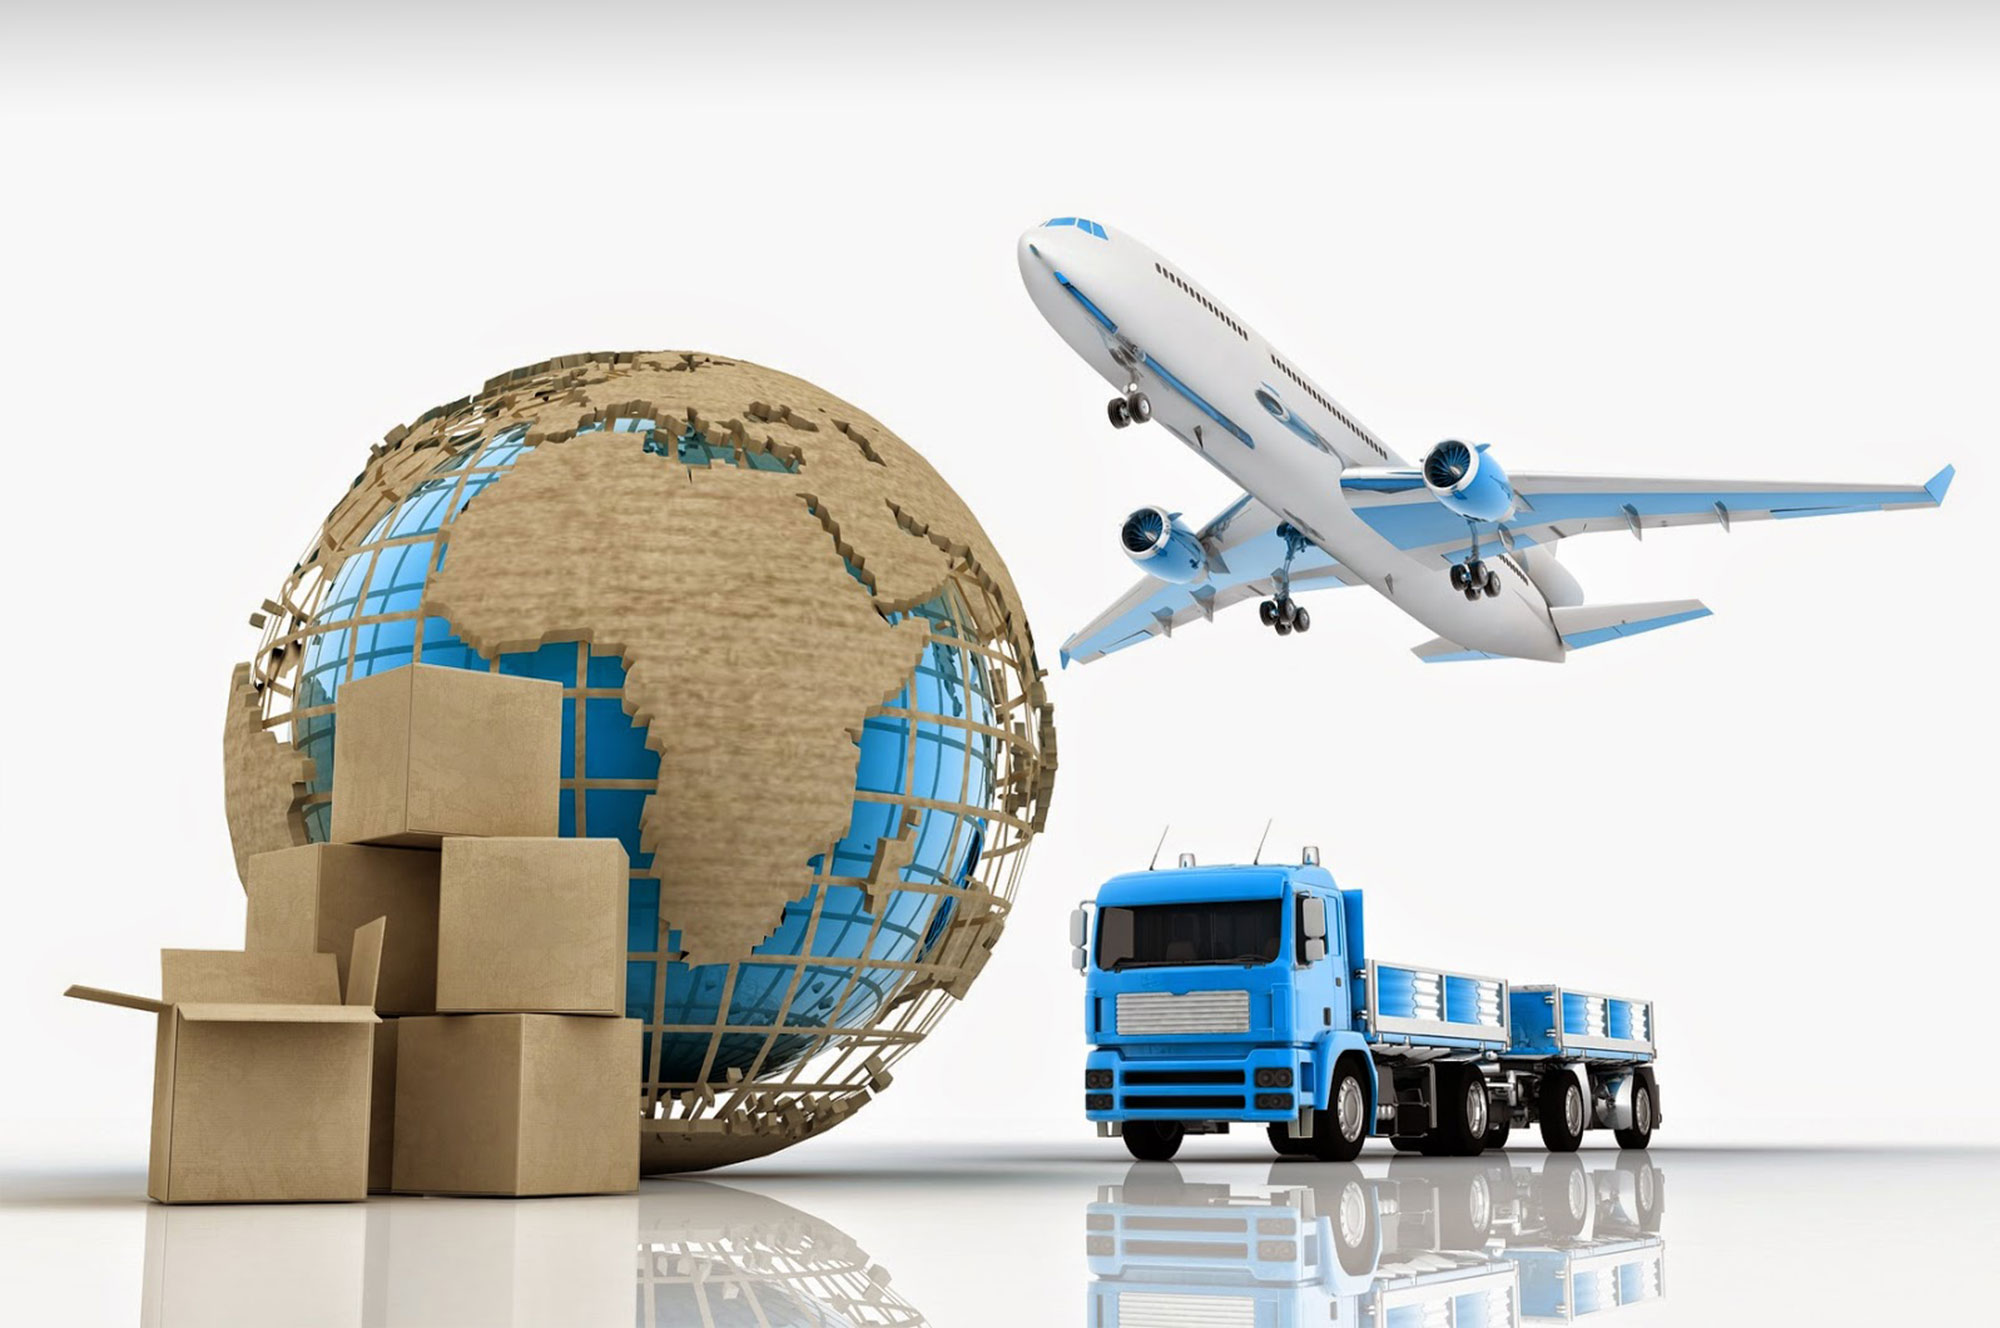 Import Requirements for Nigeria – Federal Ministry of Finance 'Sensitization